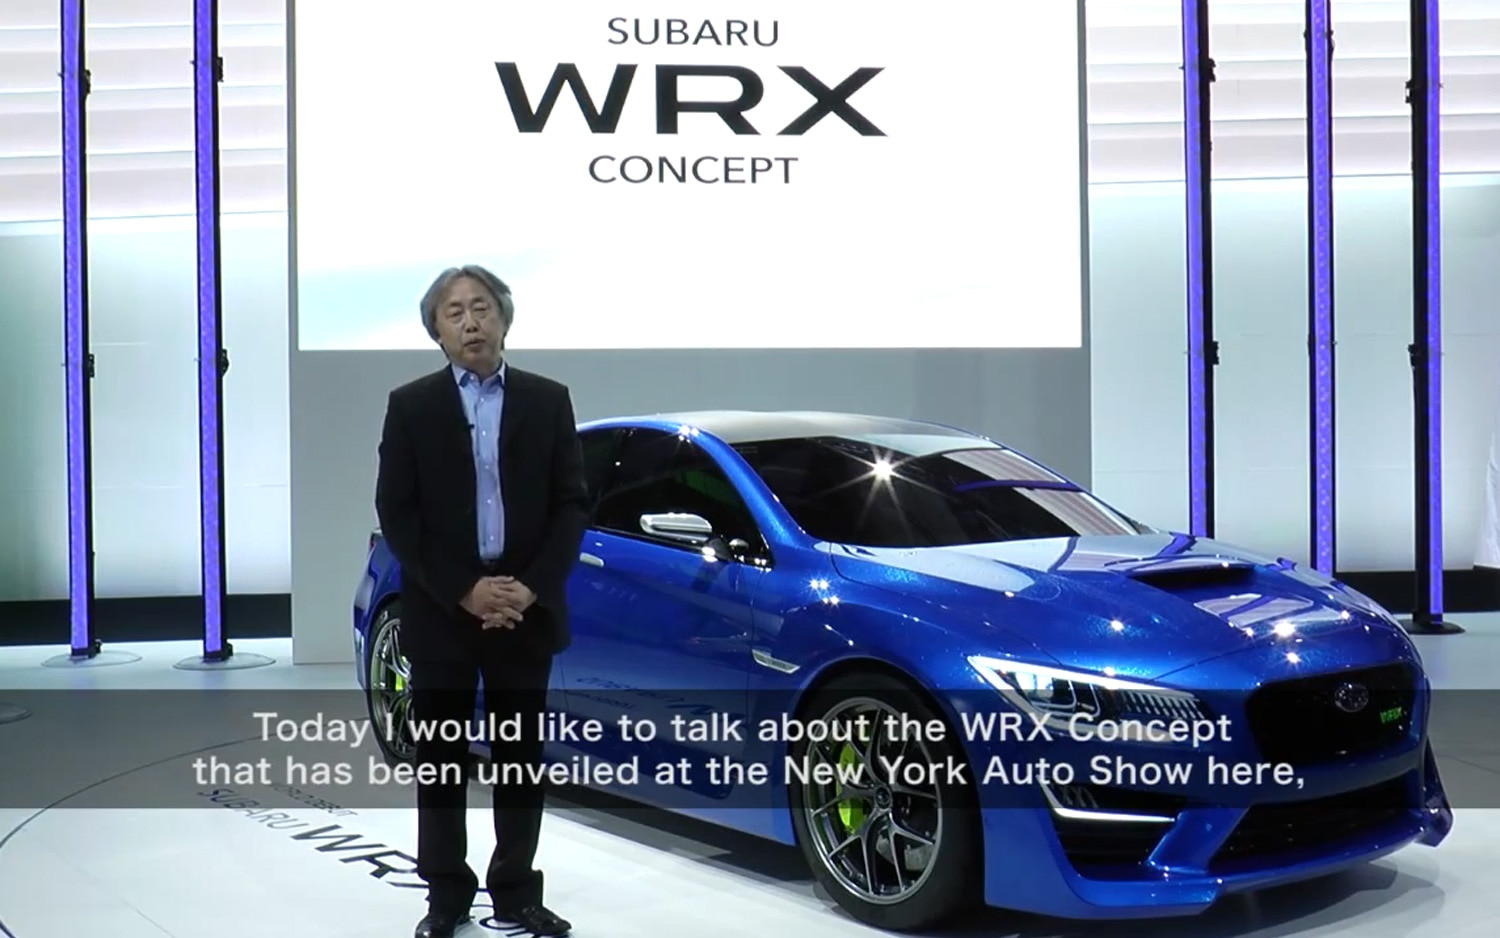 Subaru WRX Concept Design Video Image 11